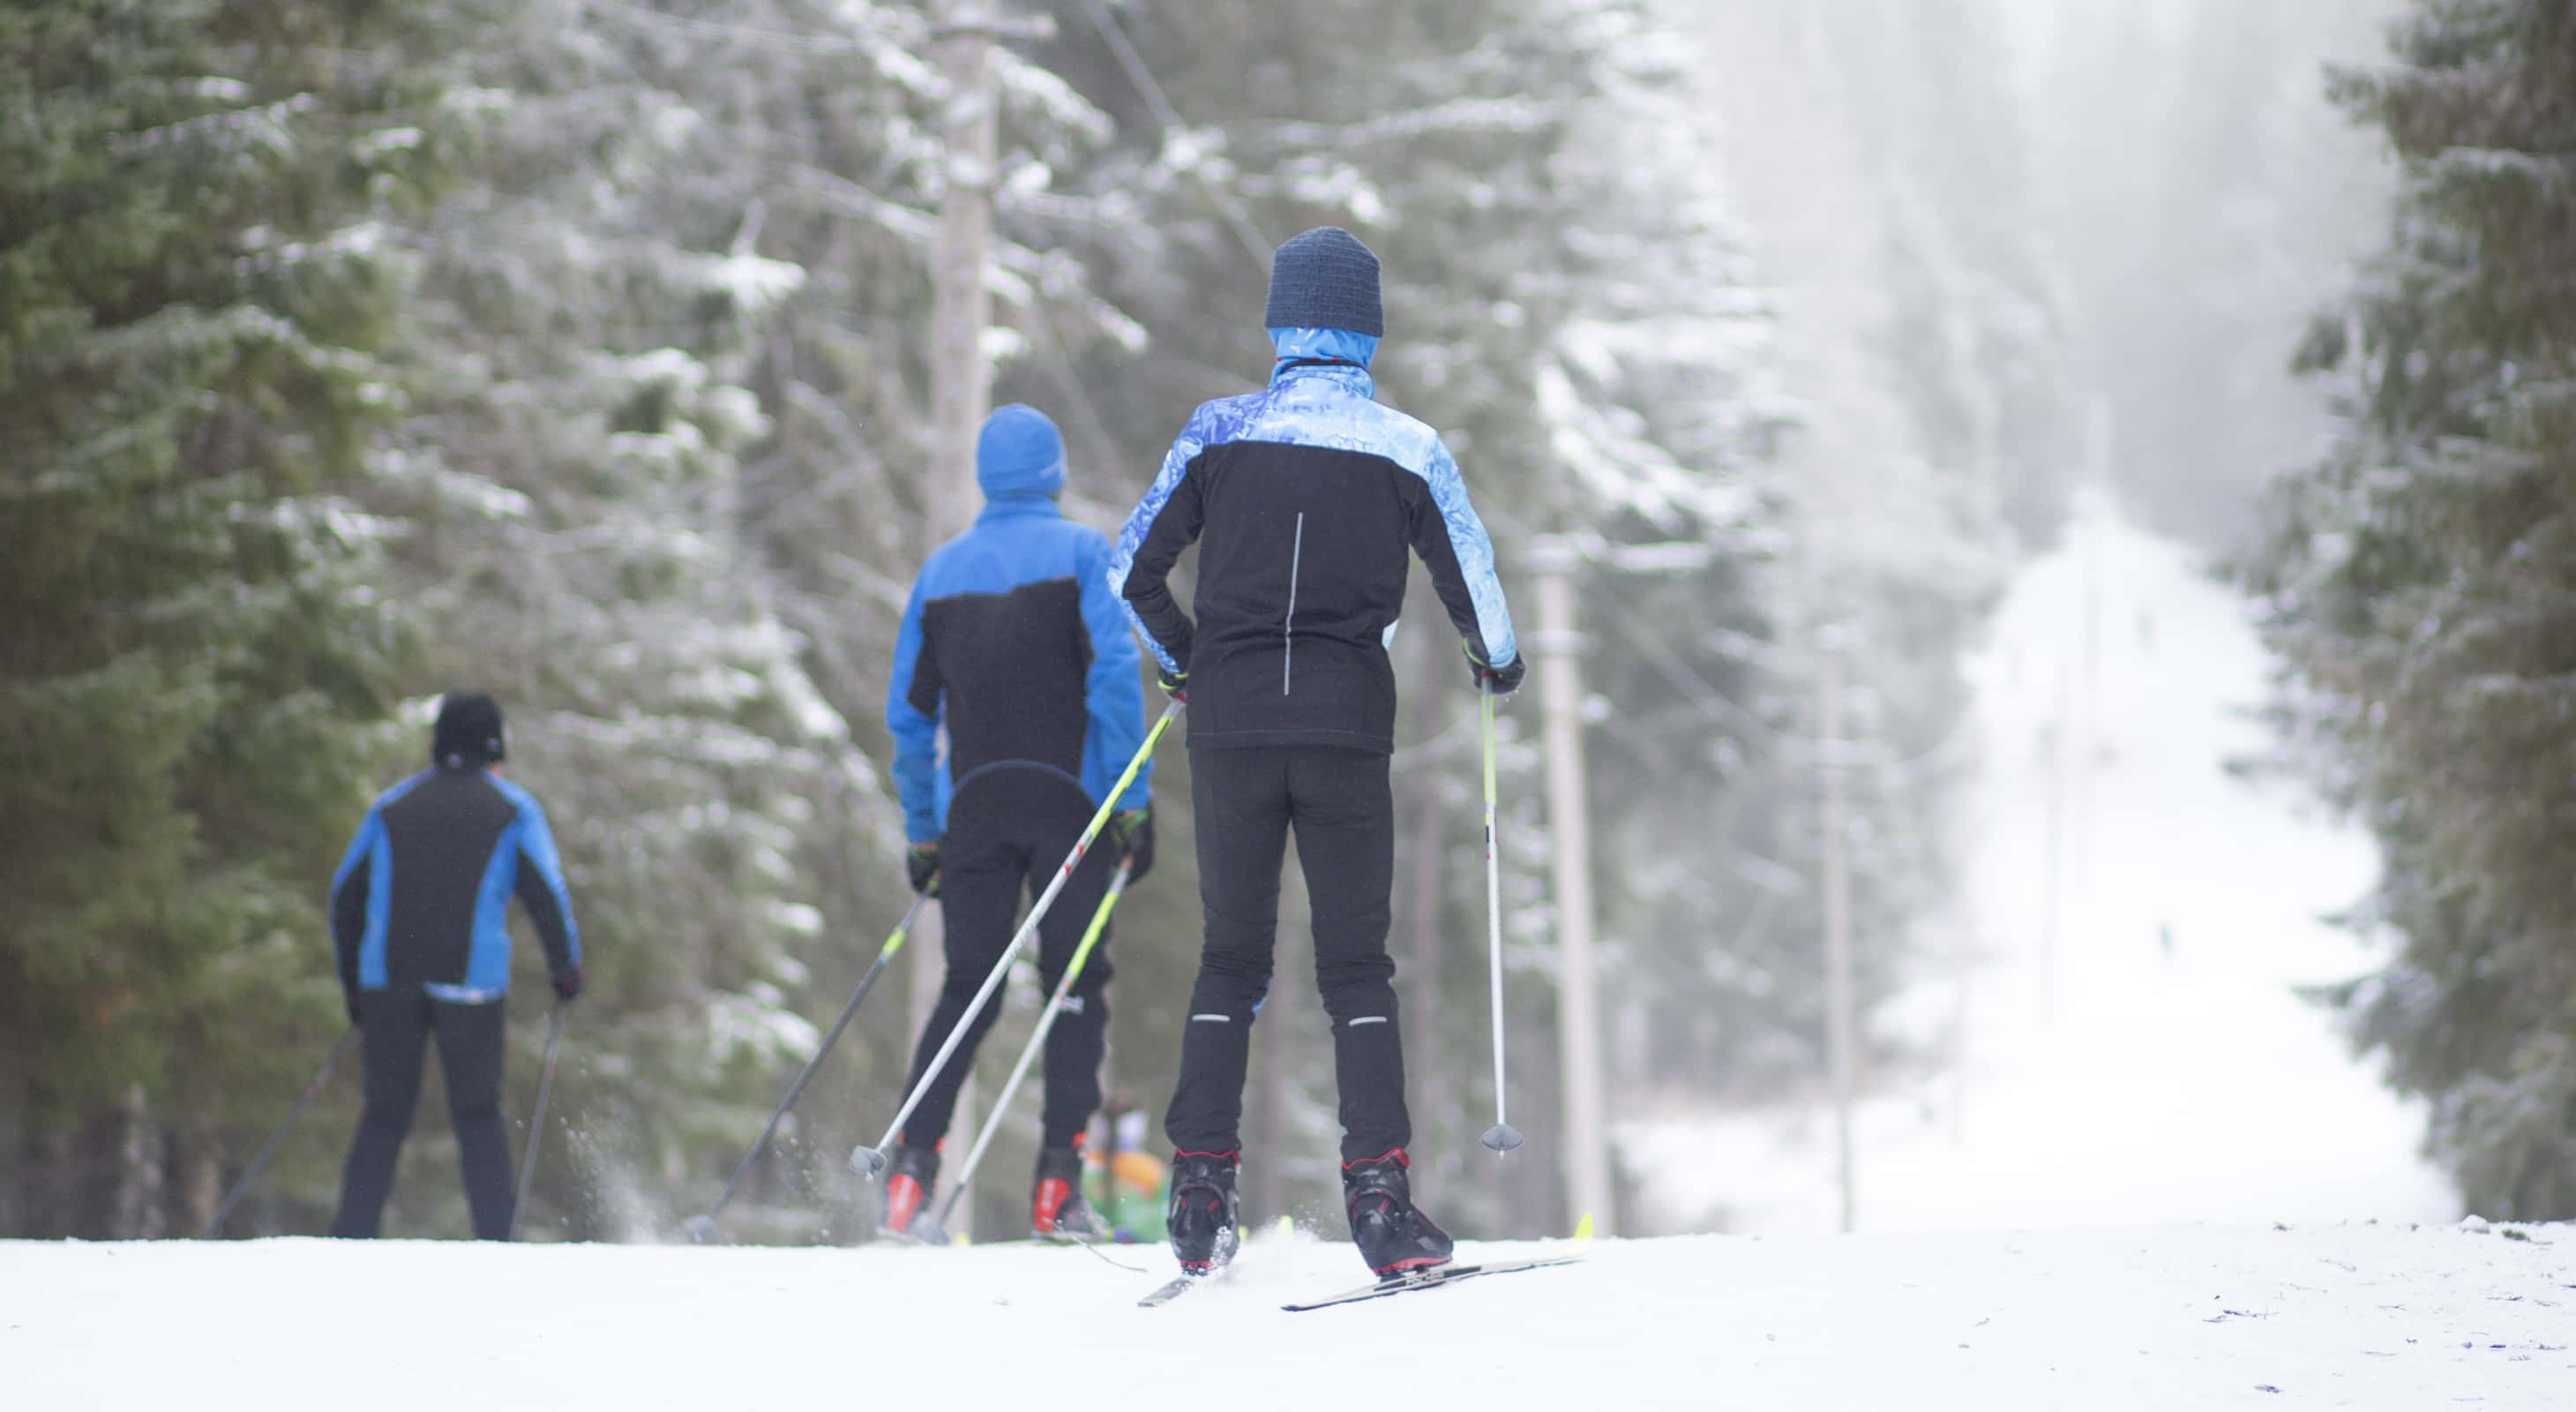 A group of people cross country skiing